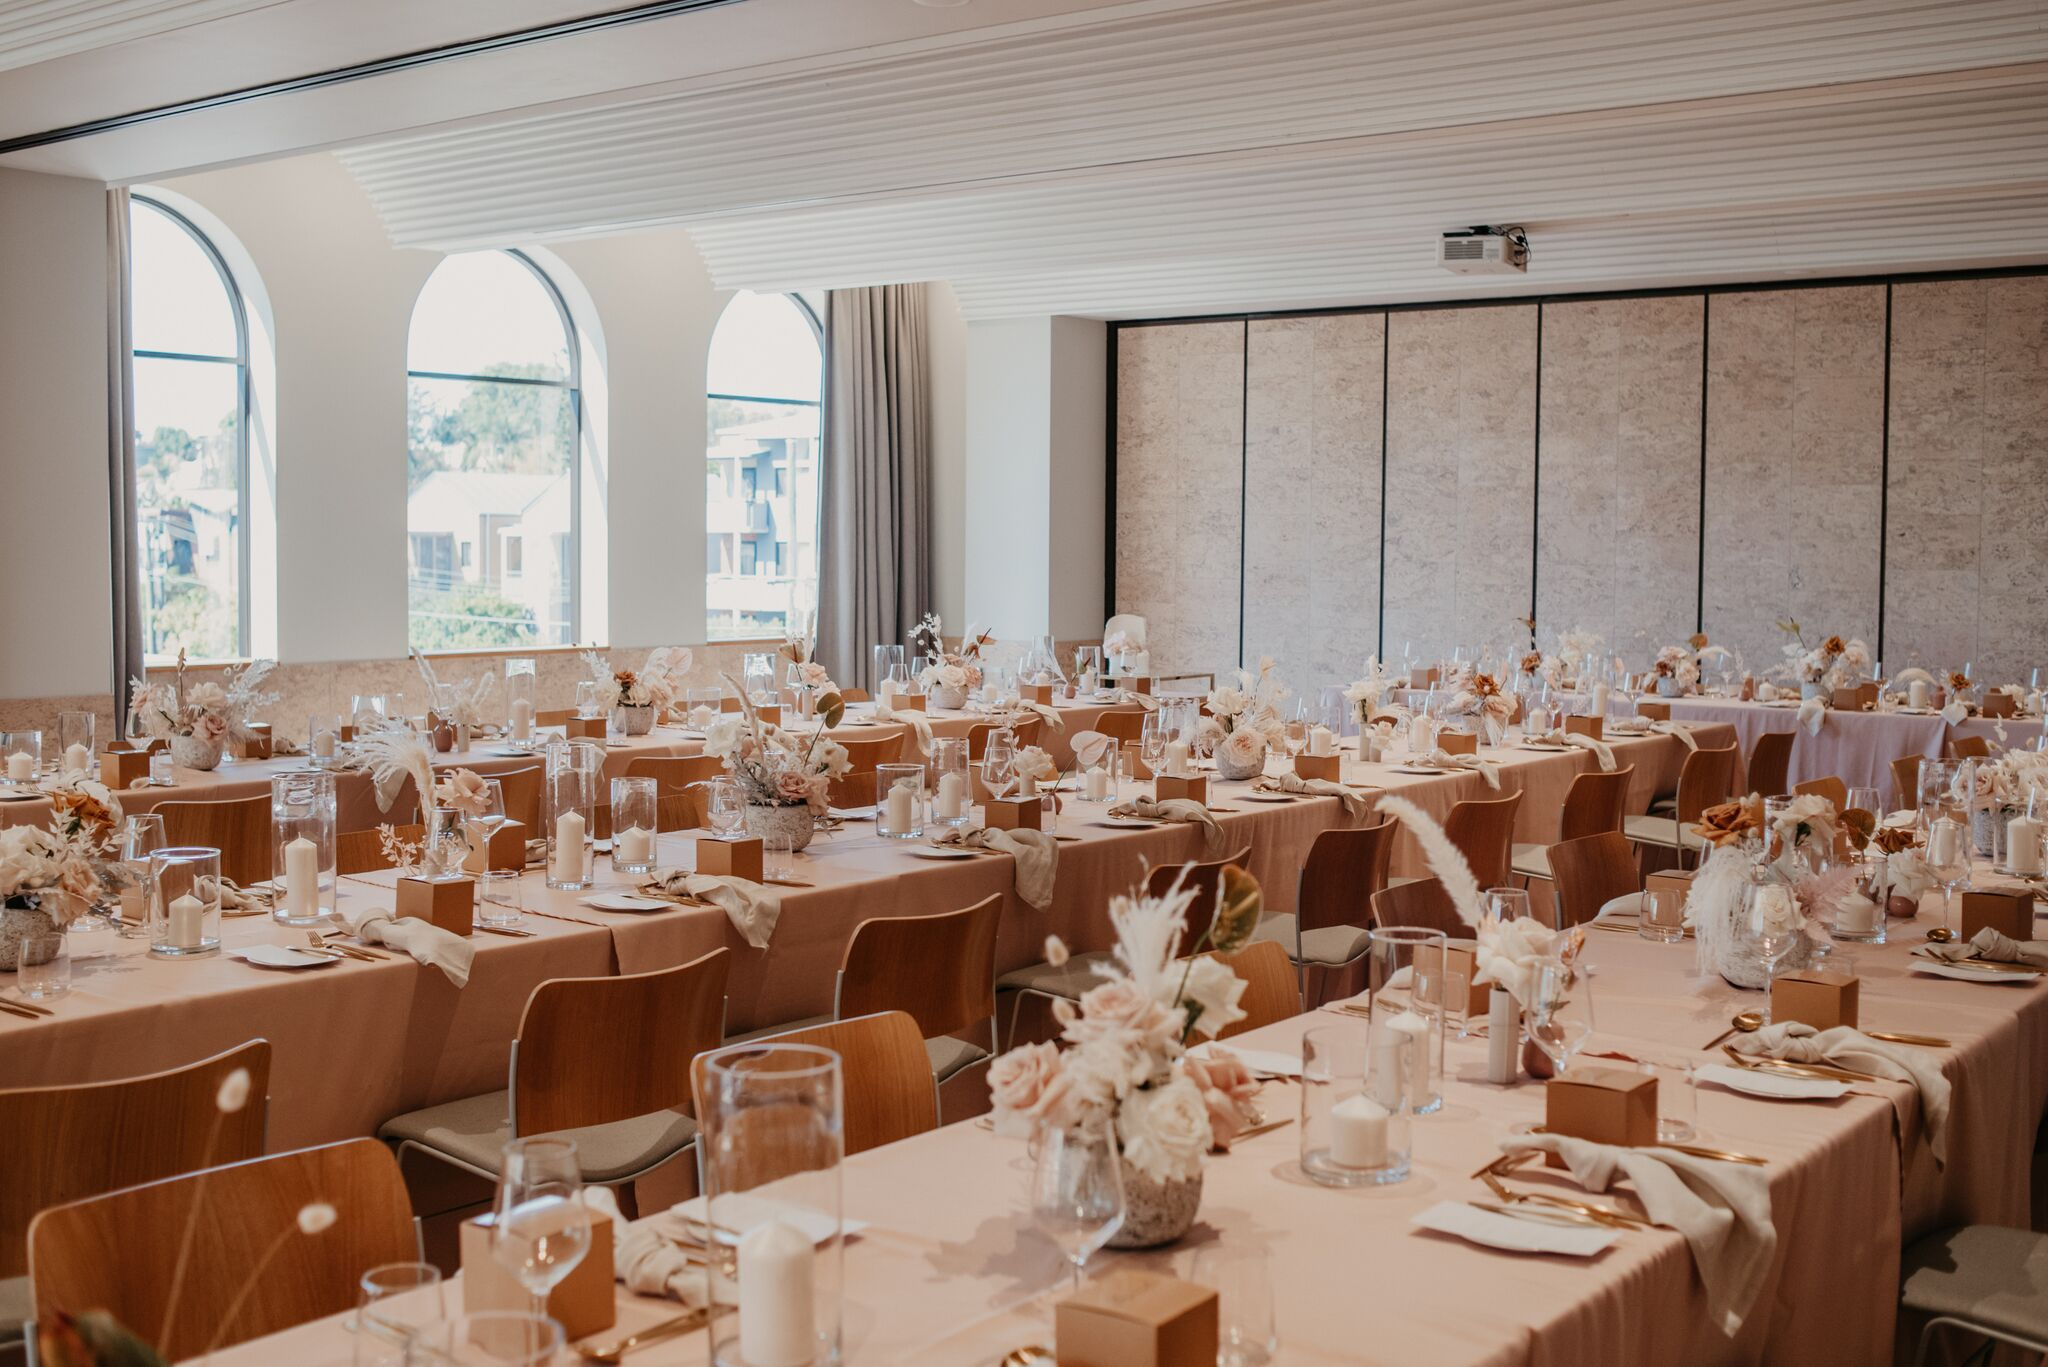 the wedding school white+white weddings and events tablescaping